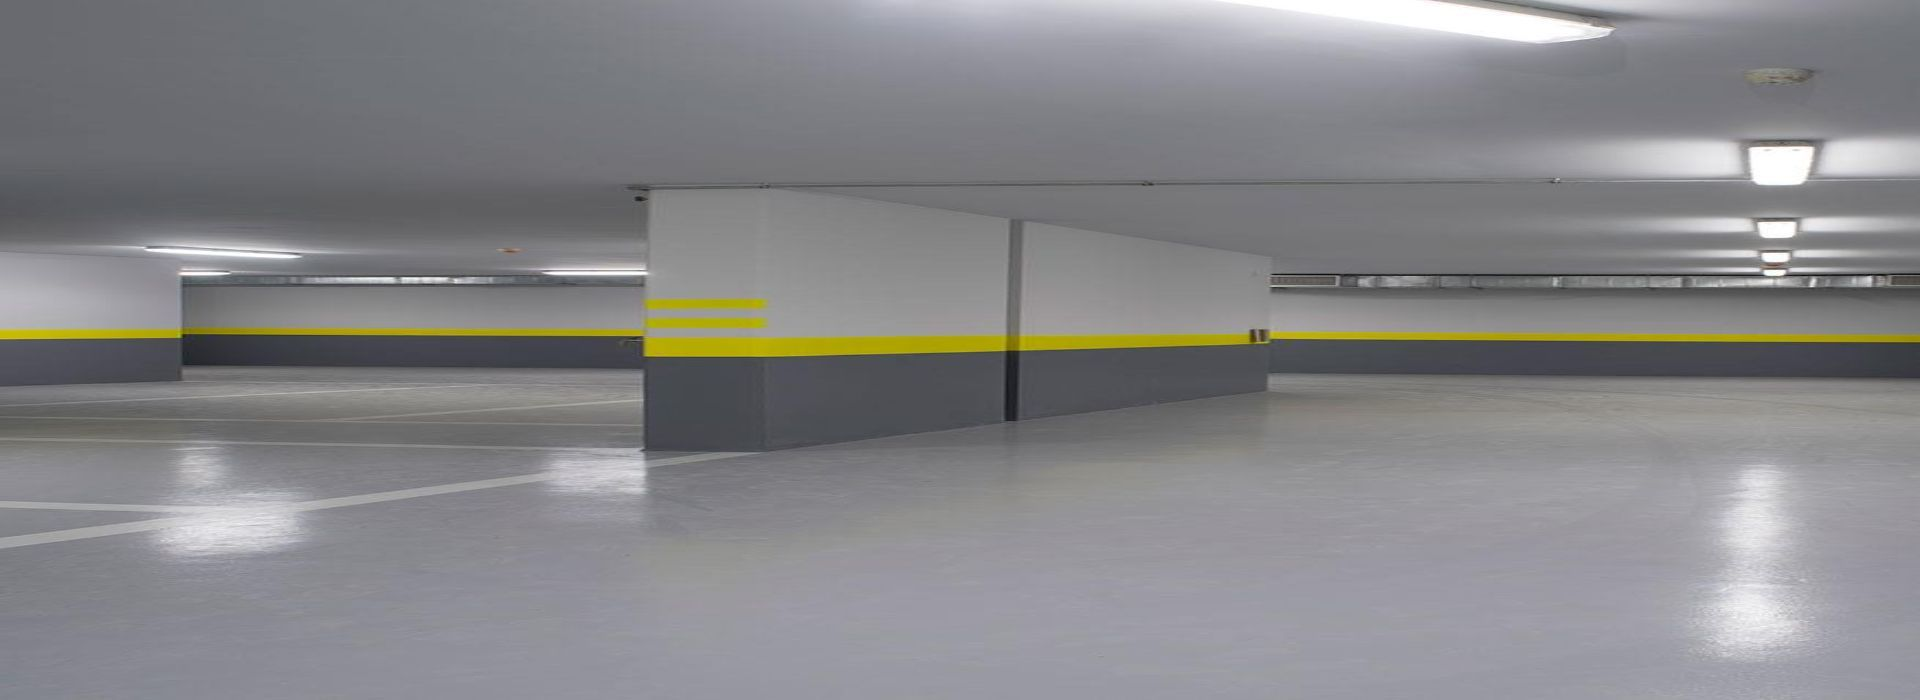 Car-Park-Commercial-Painting1.jpg